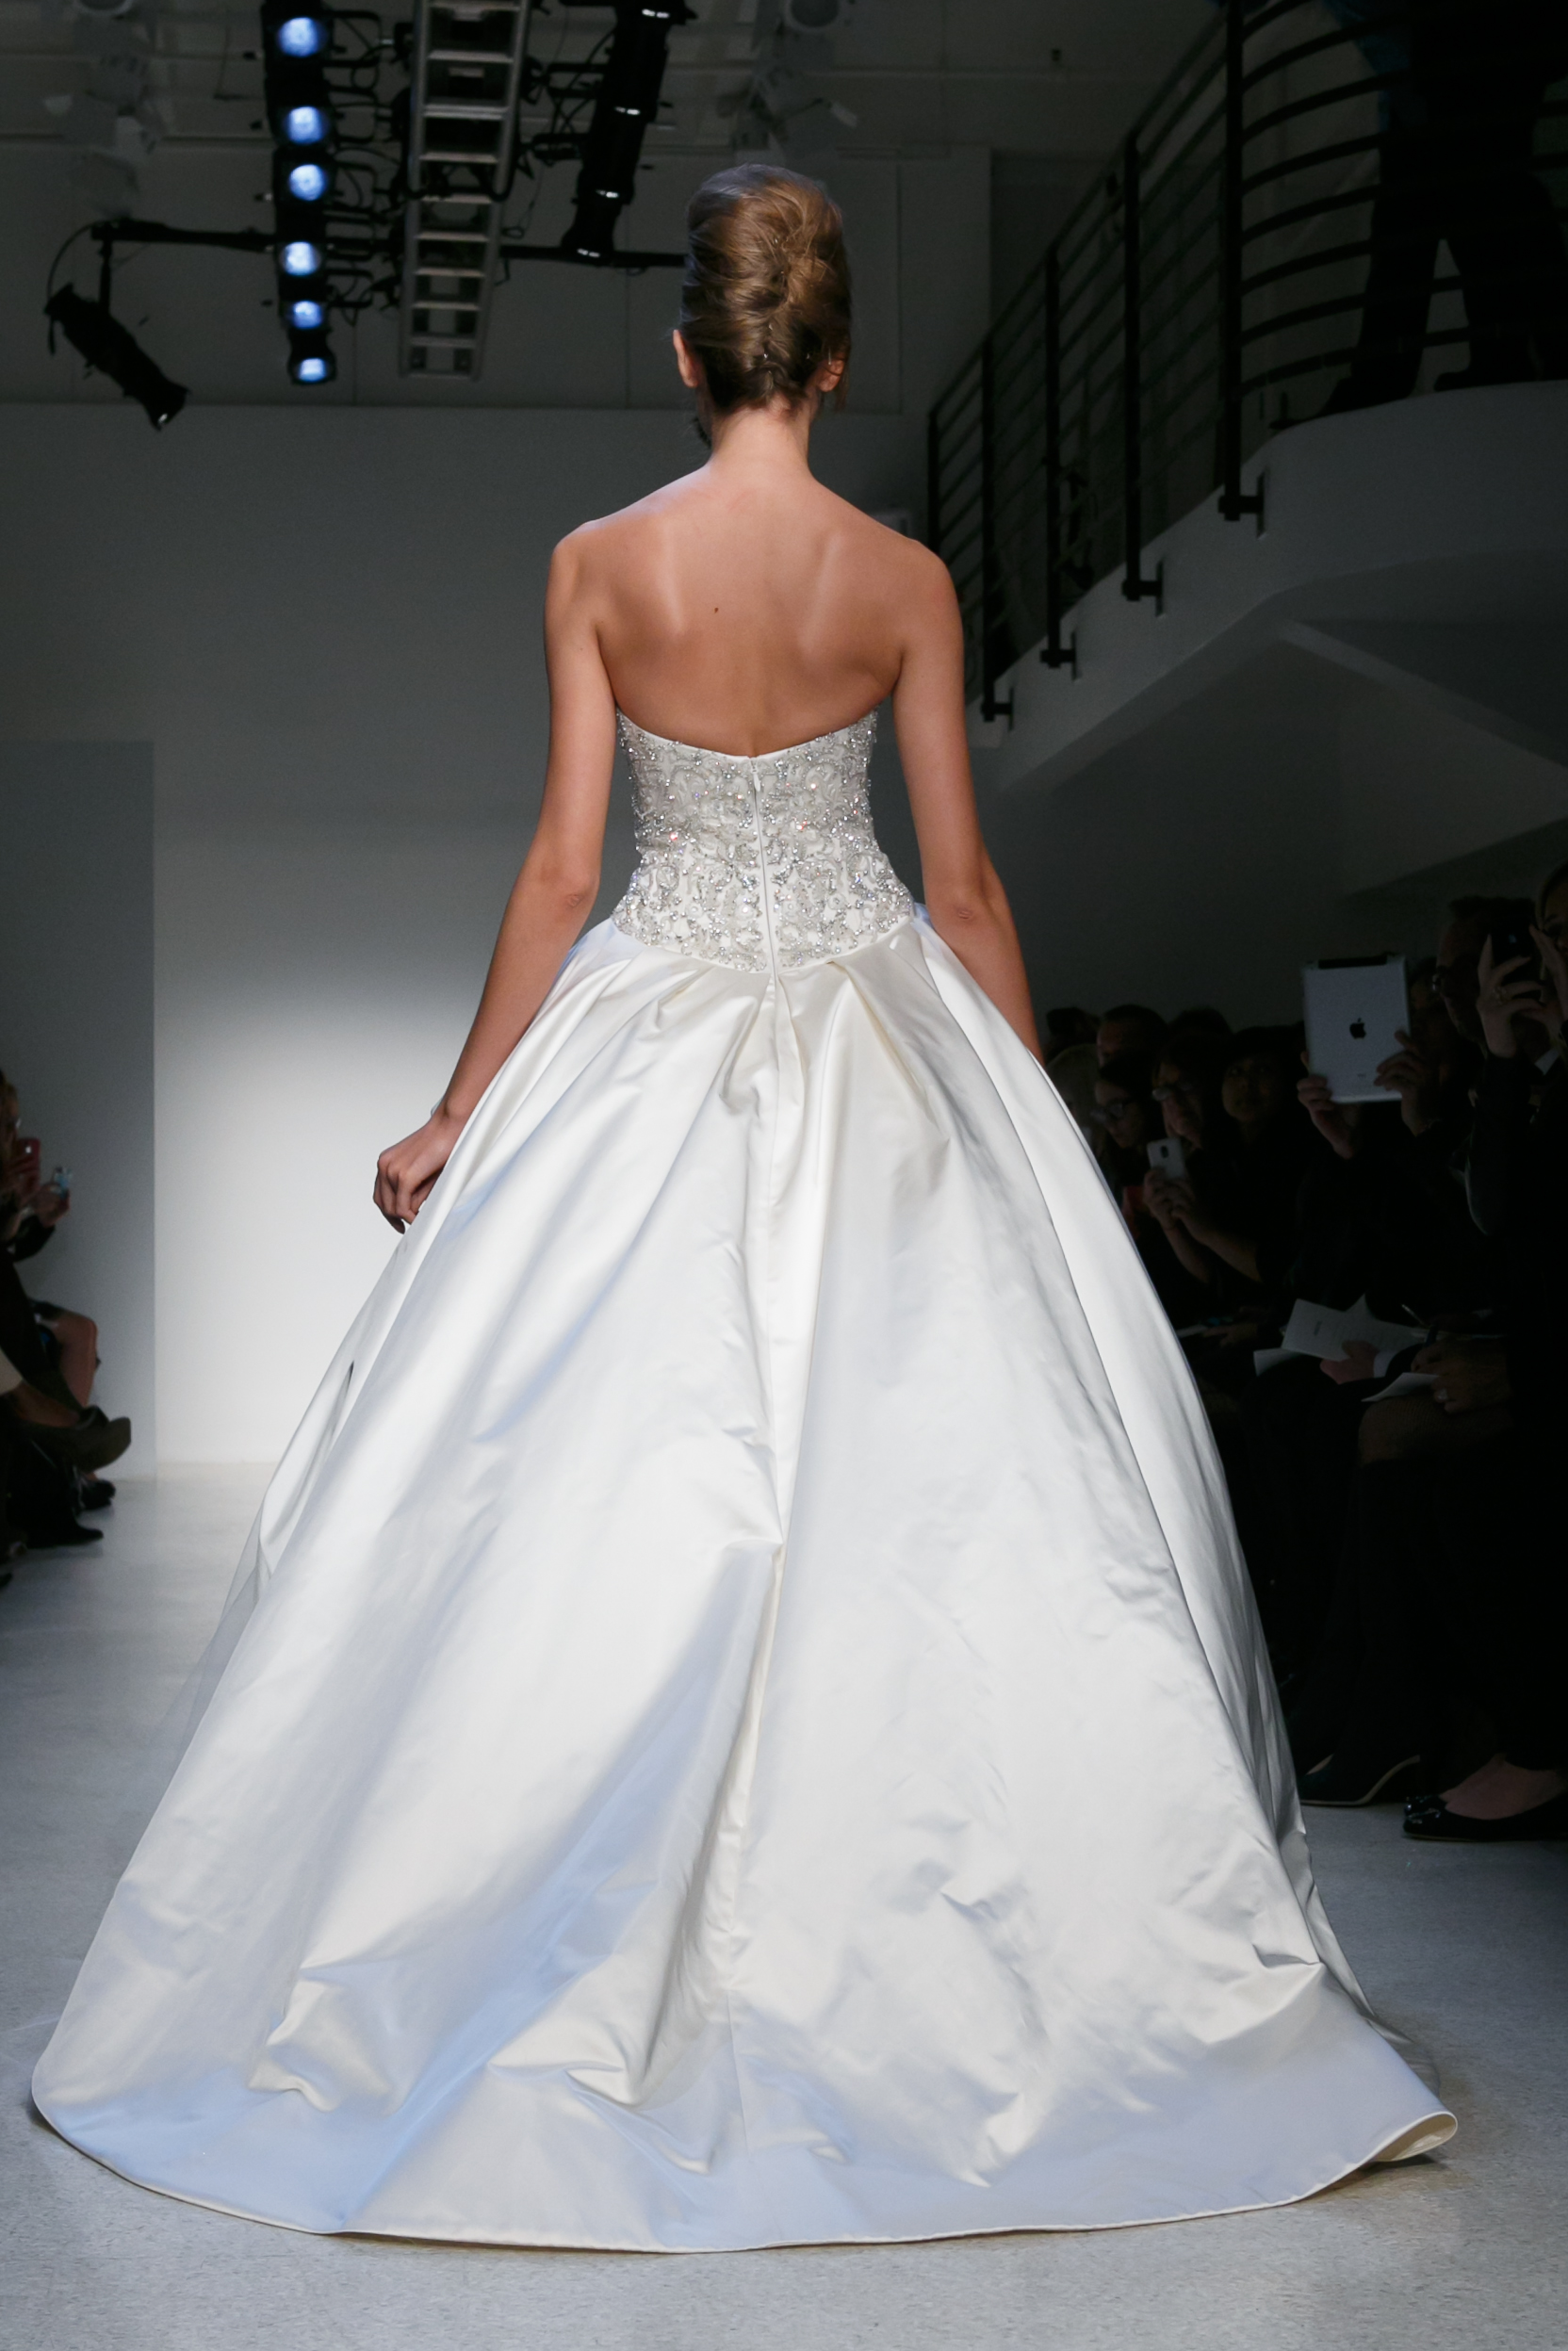 Fall-2013-wedding-dress-kenneth-pool-by-amsale-bridal-gowns-1c.original